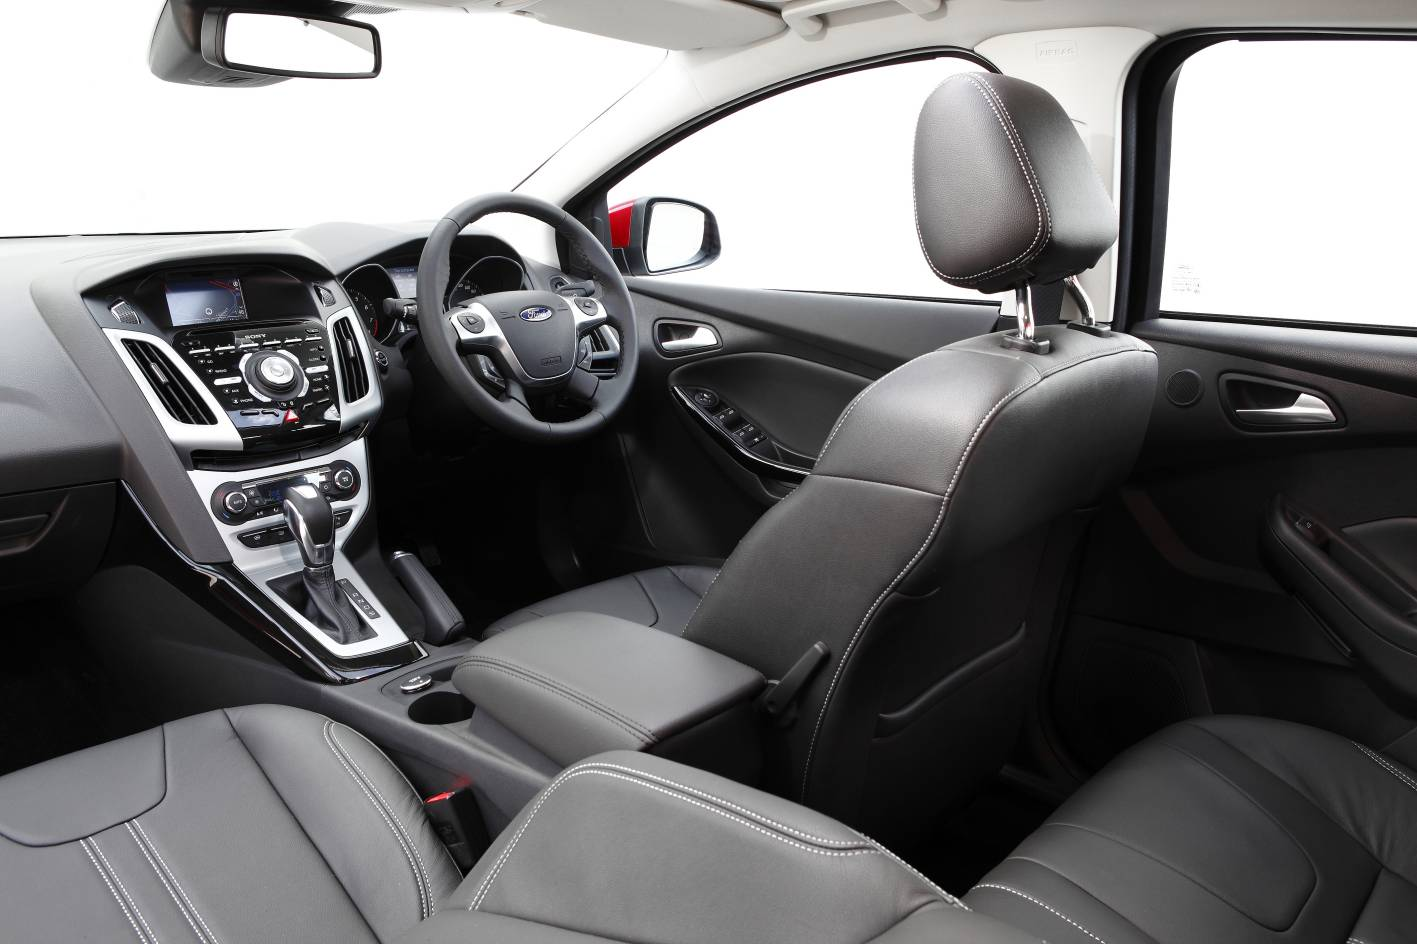 2012 Mustang For Sale >> 2012 Ford Focus MkII on sale in Australia from $19,990 ...